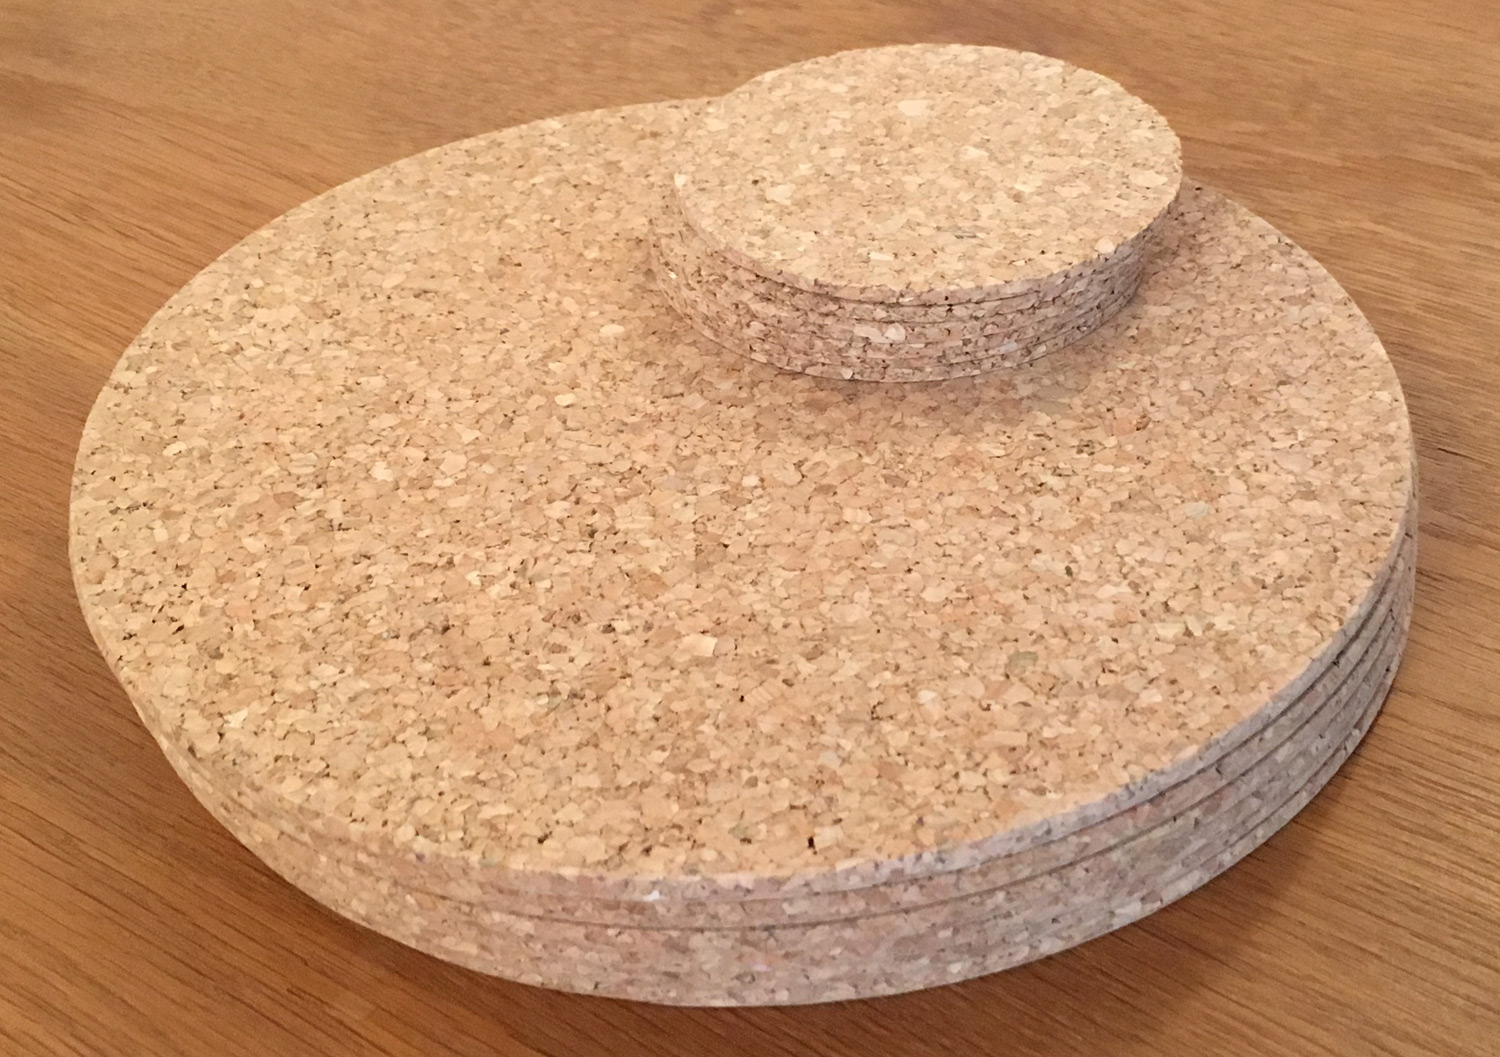 Dining table mats - Vintage Round Cork Placemats Drinks Coasters Kitchen Dining Table